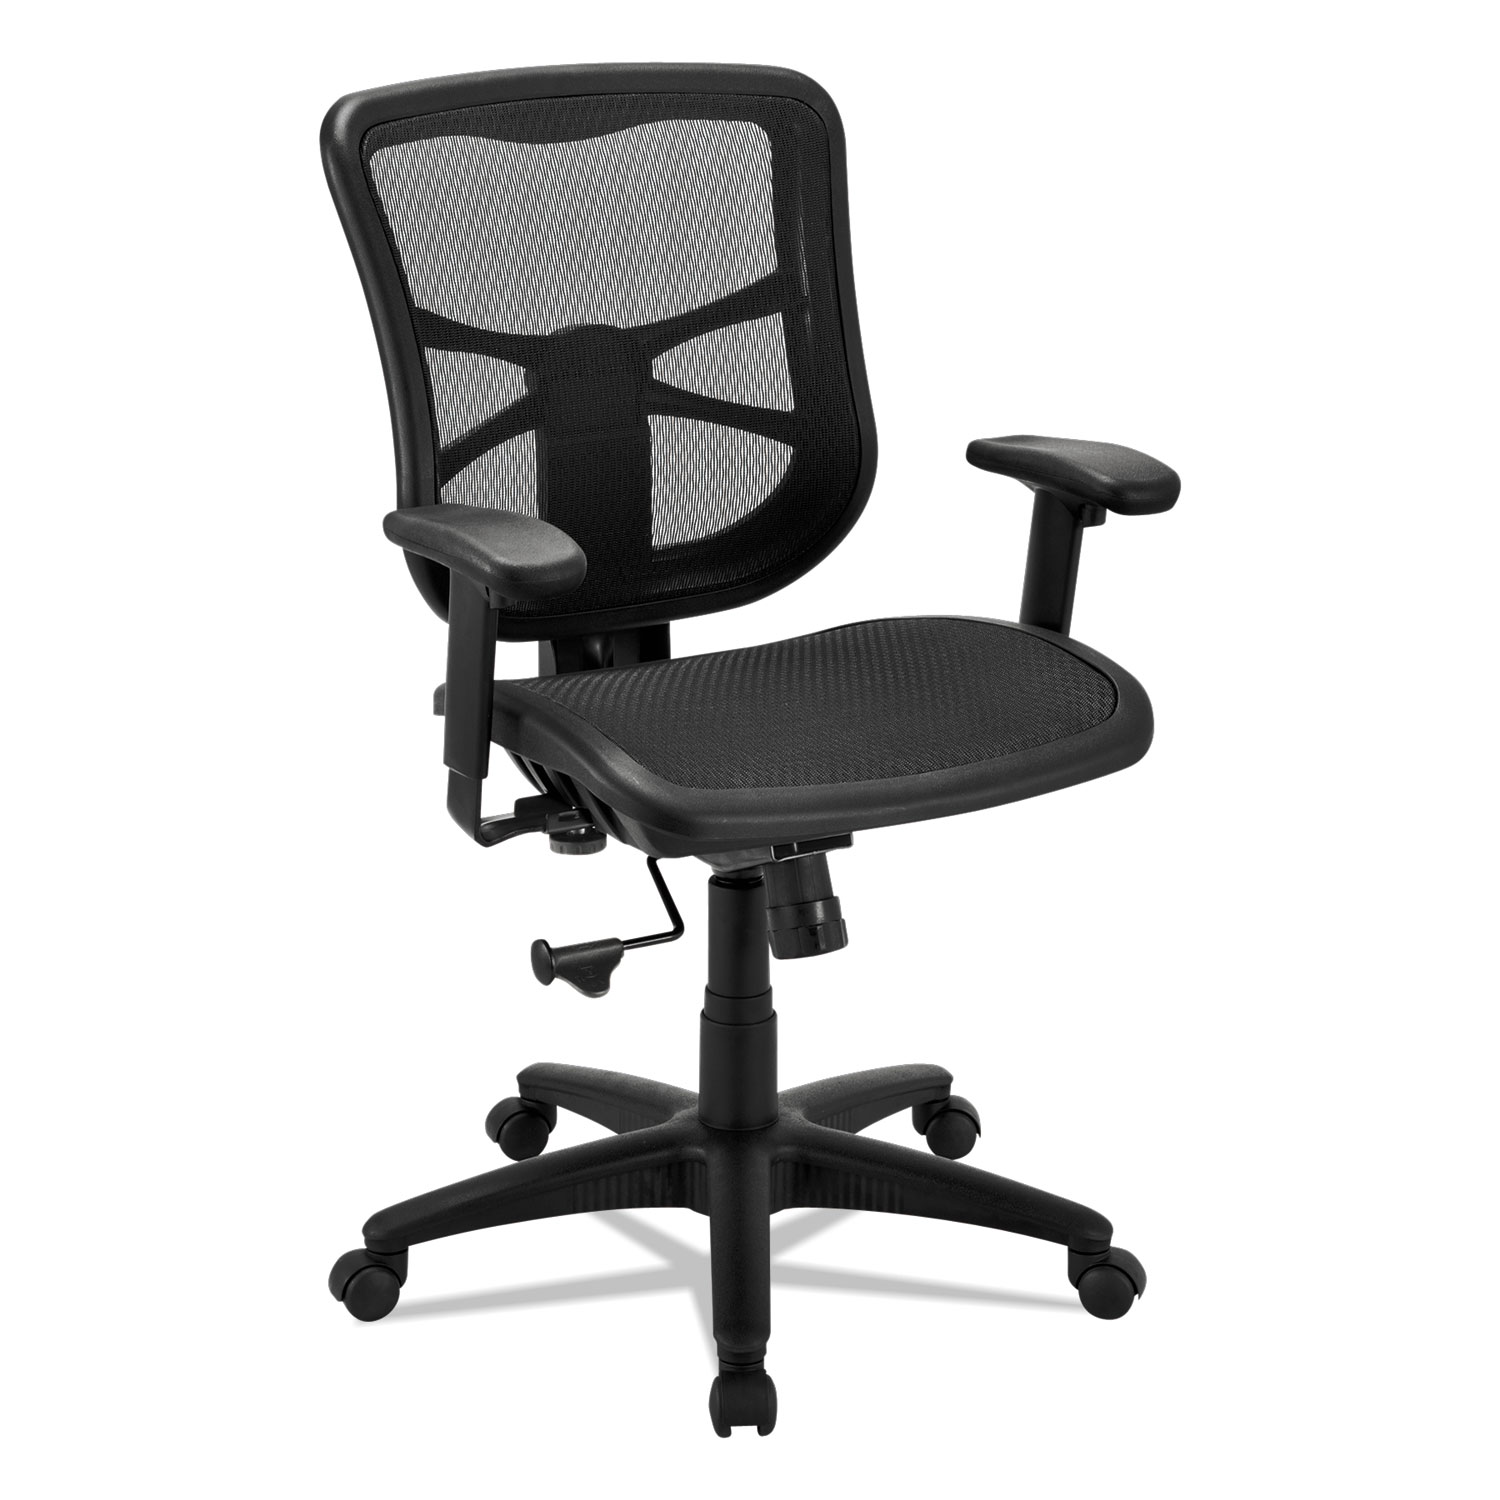 Alera Chair Alera Elusion Series Air Mesh Mid Back Swivel Tilt Chair